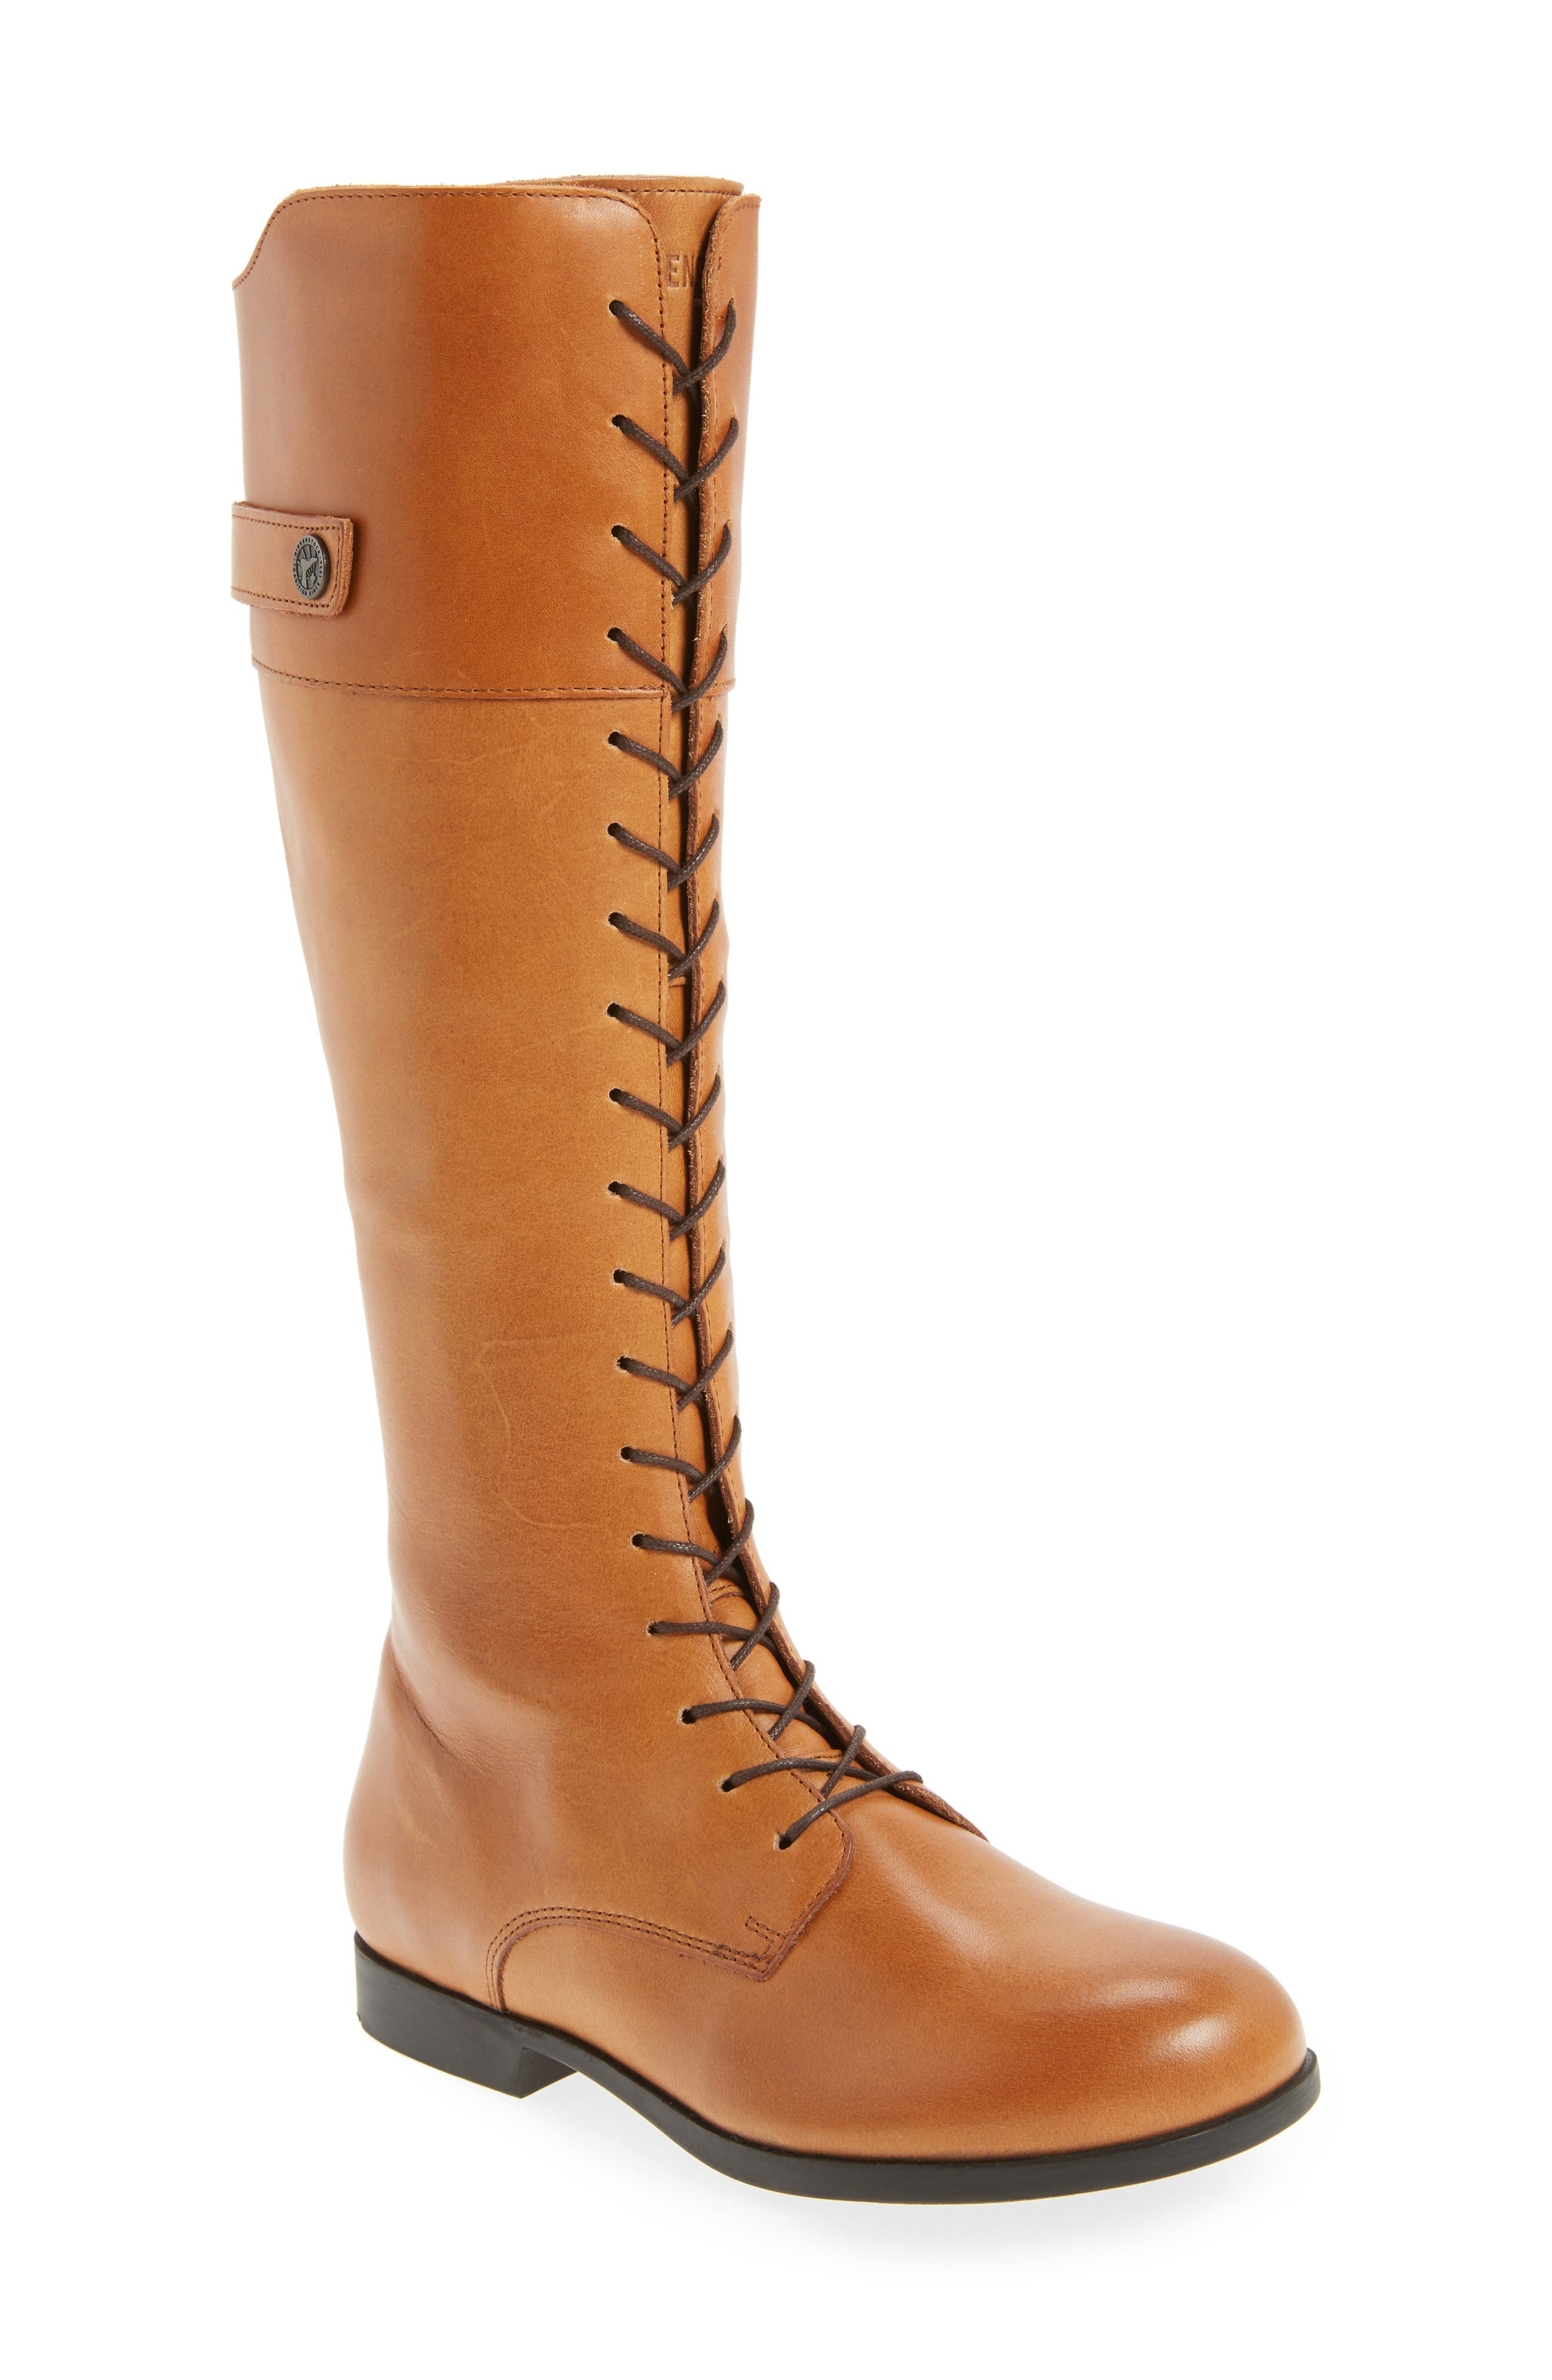 Main Image - Birkenstock Longford Knee-High Lace-Up Boot (Women)